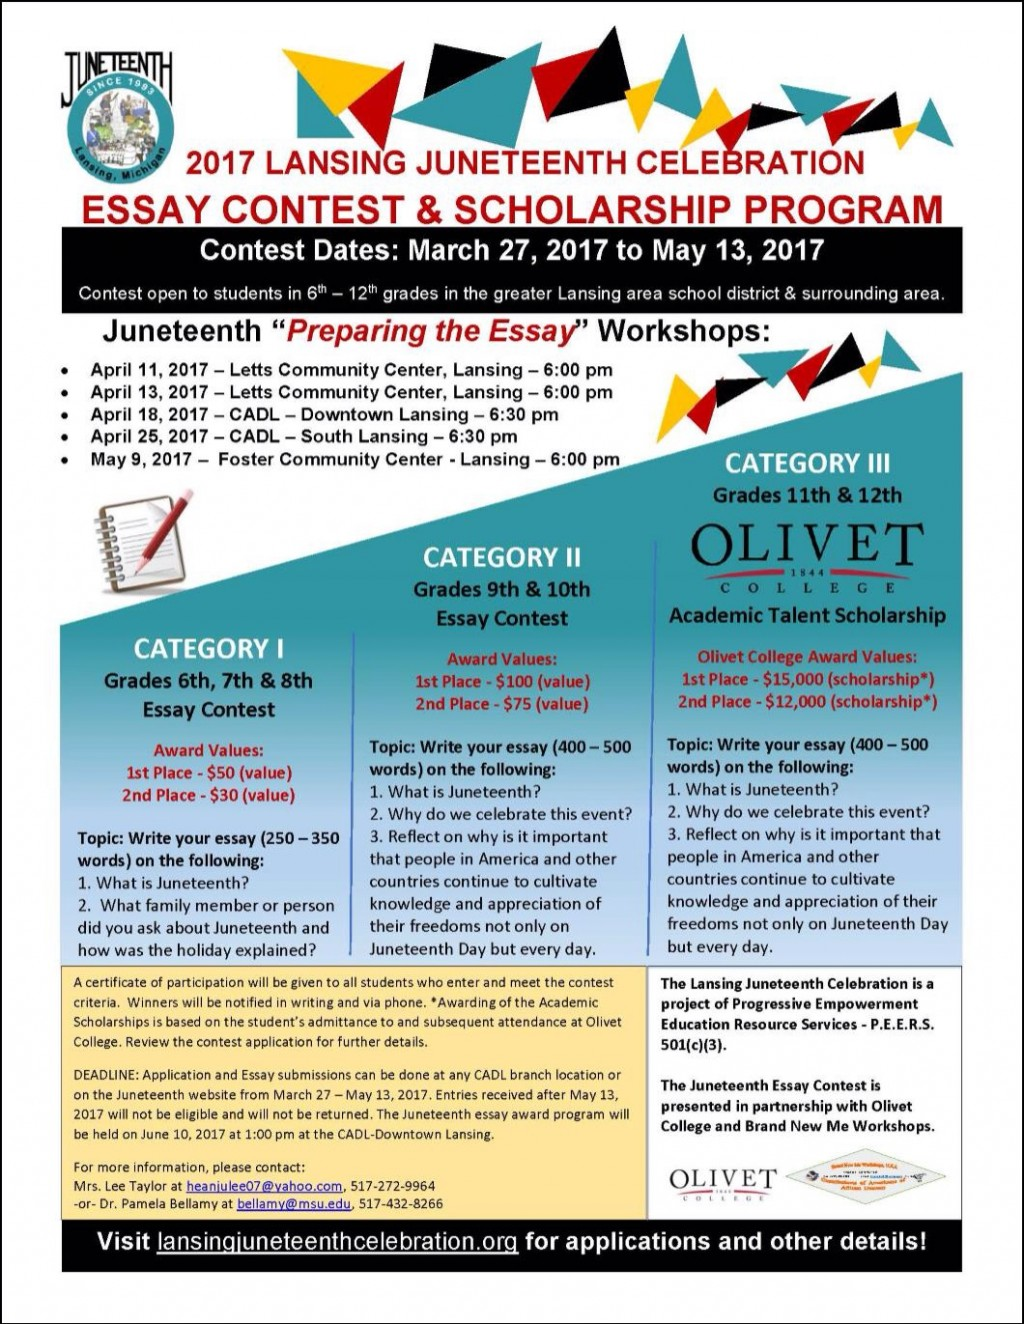 015 Essay Example Scholarship Contest Img 3215 Astounding Contests For High School Students 2019 Middle Large